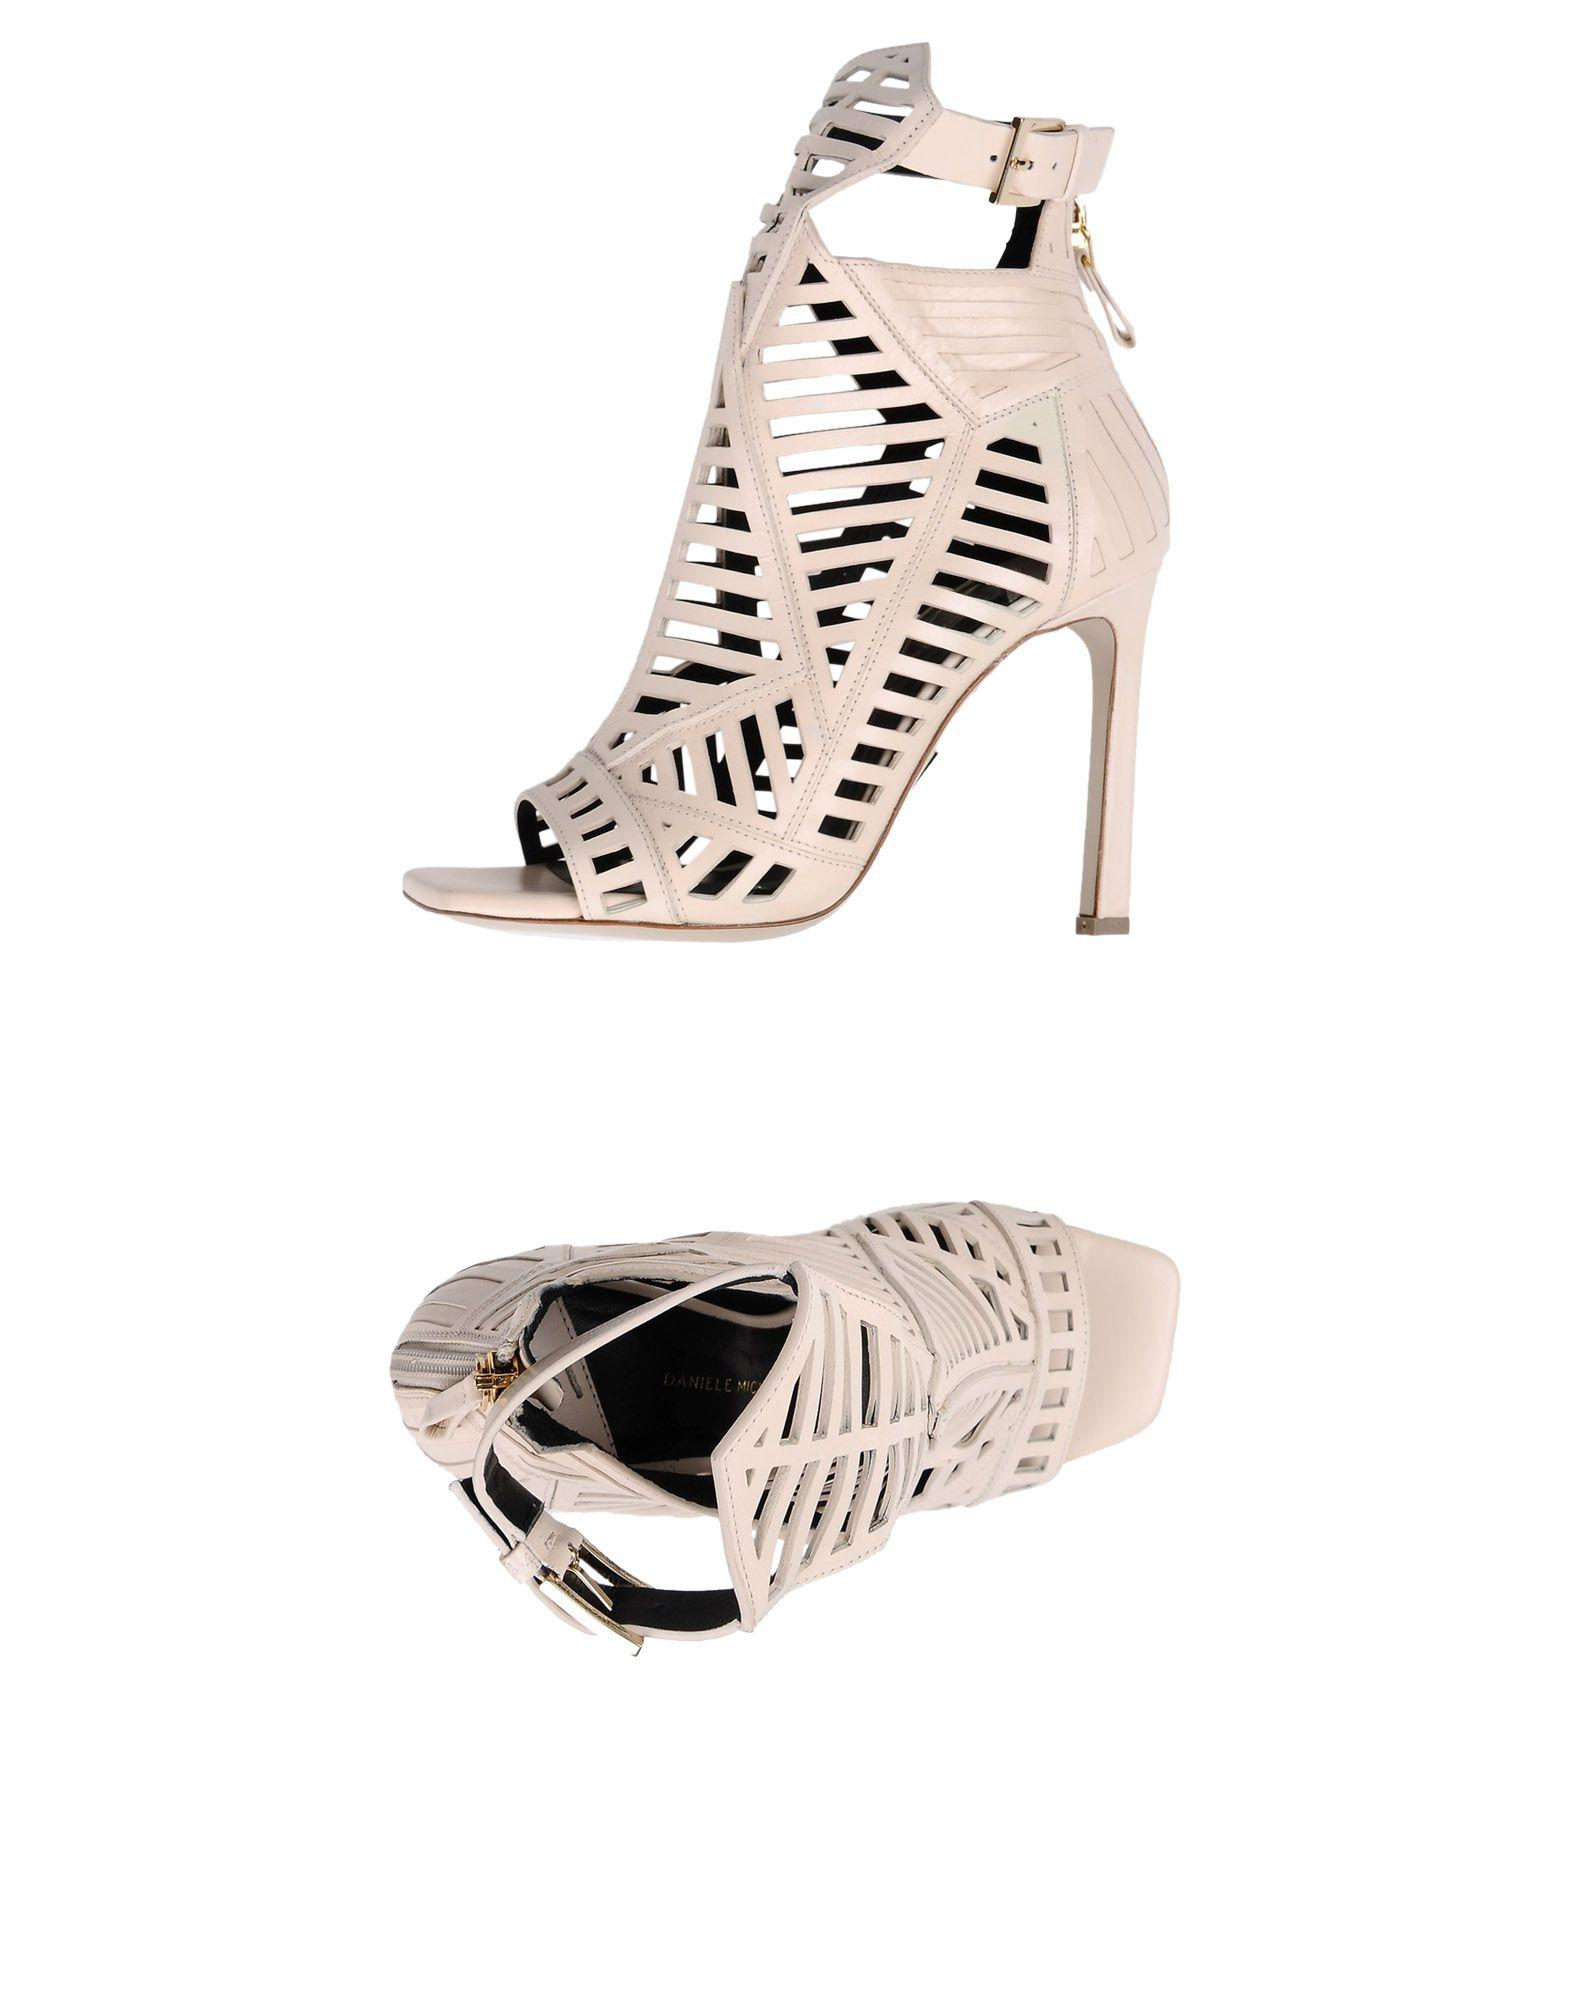 Daniele Michetti Sandals In Pale Pink